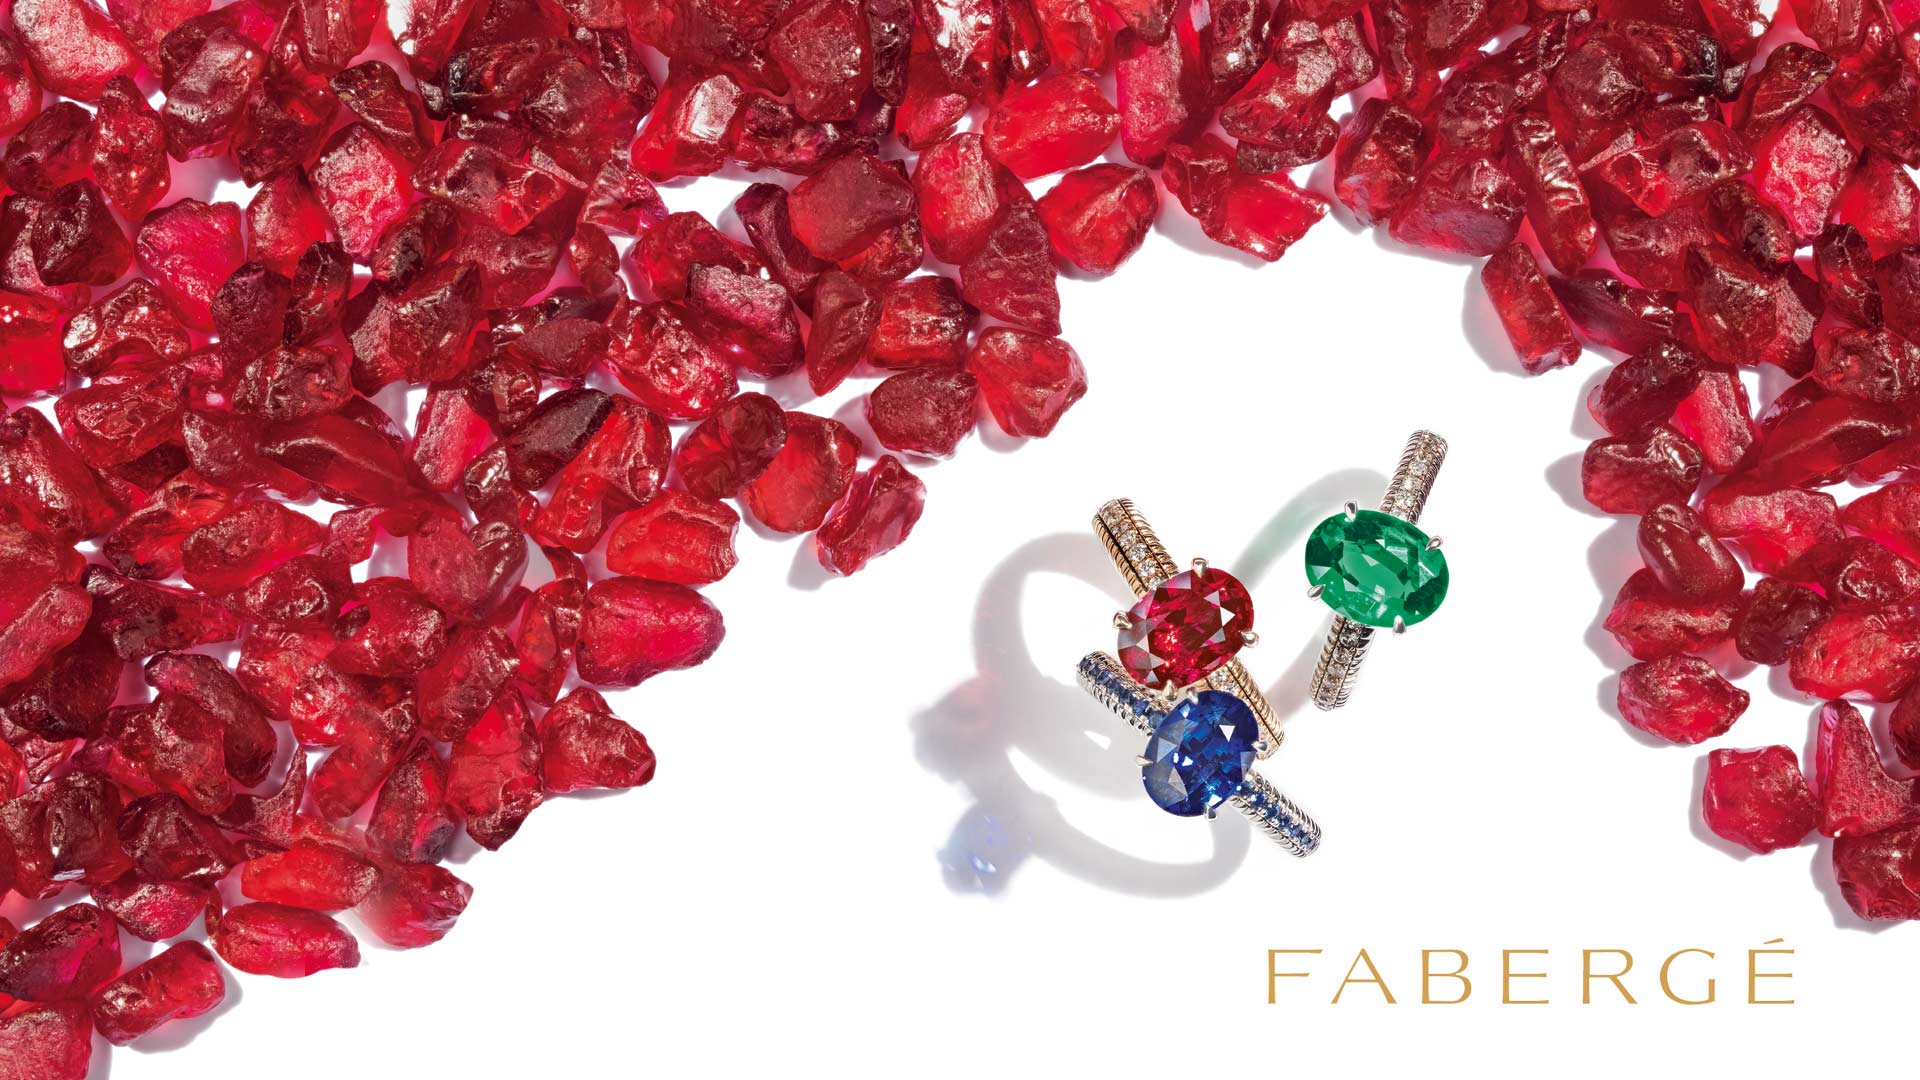 MB Comms client Faberge